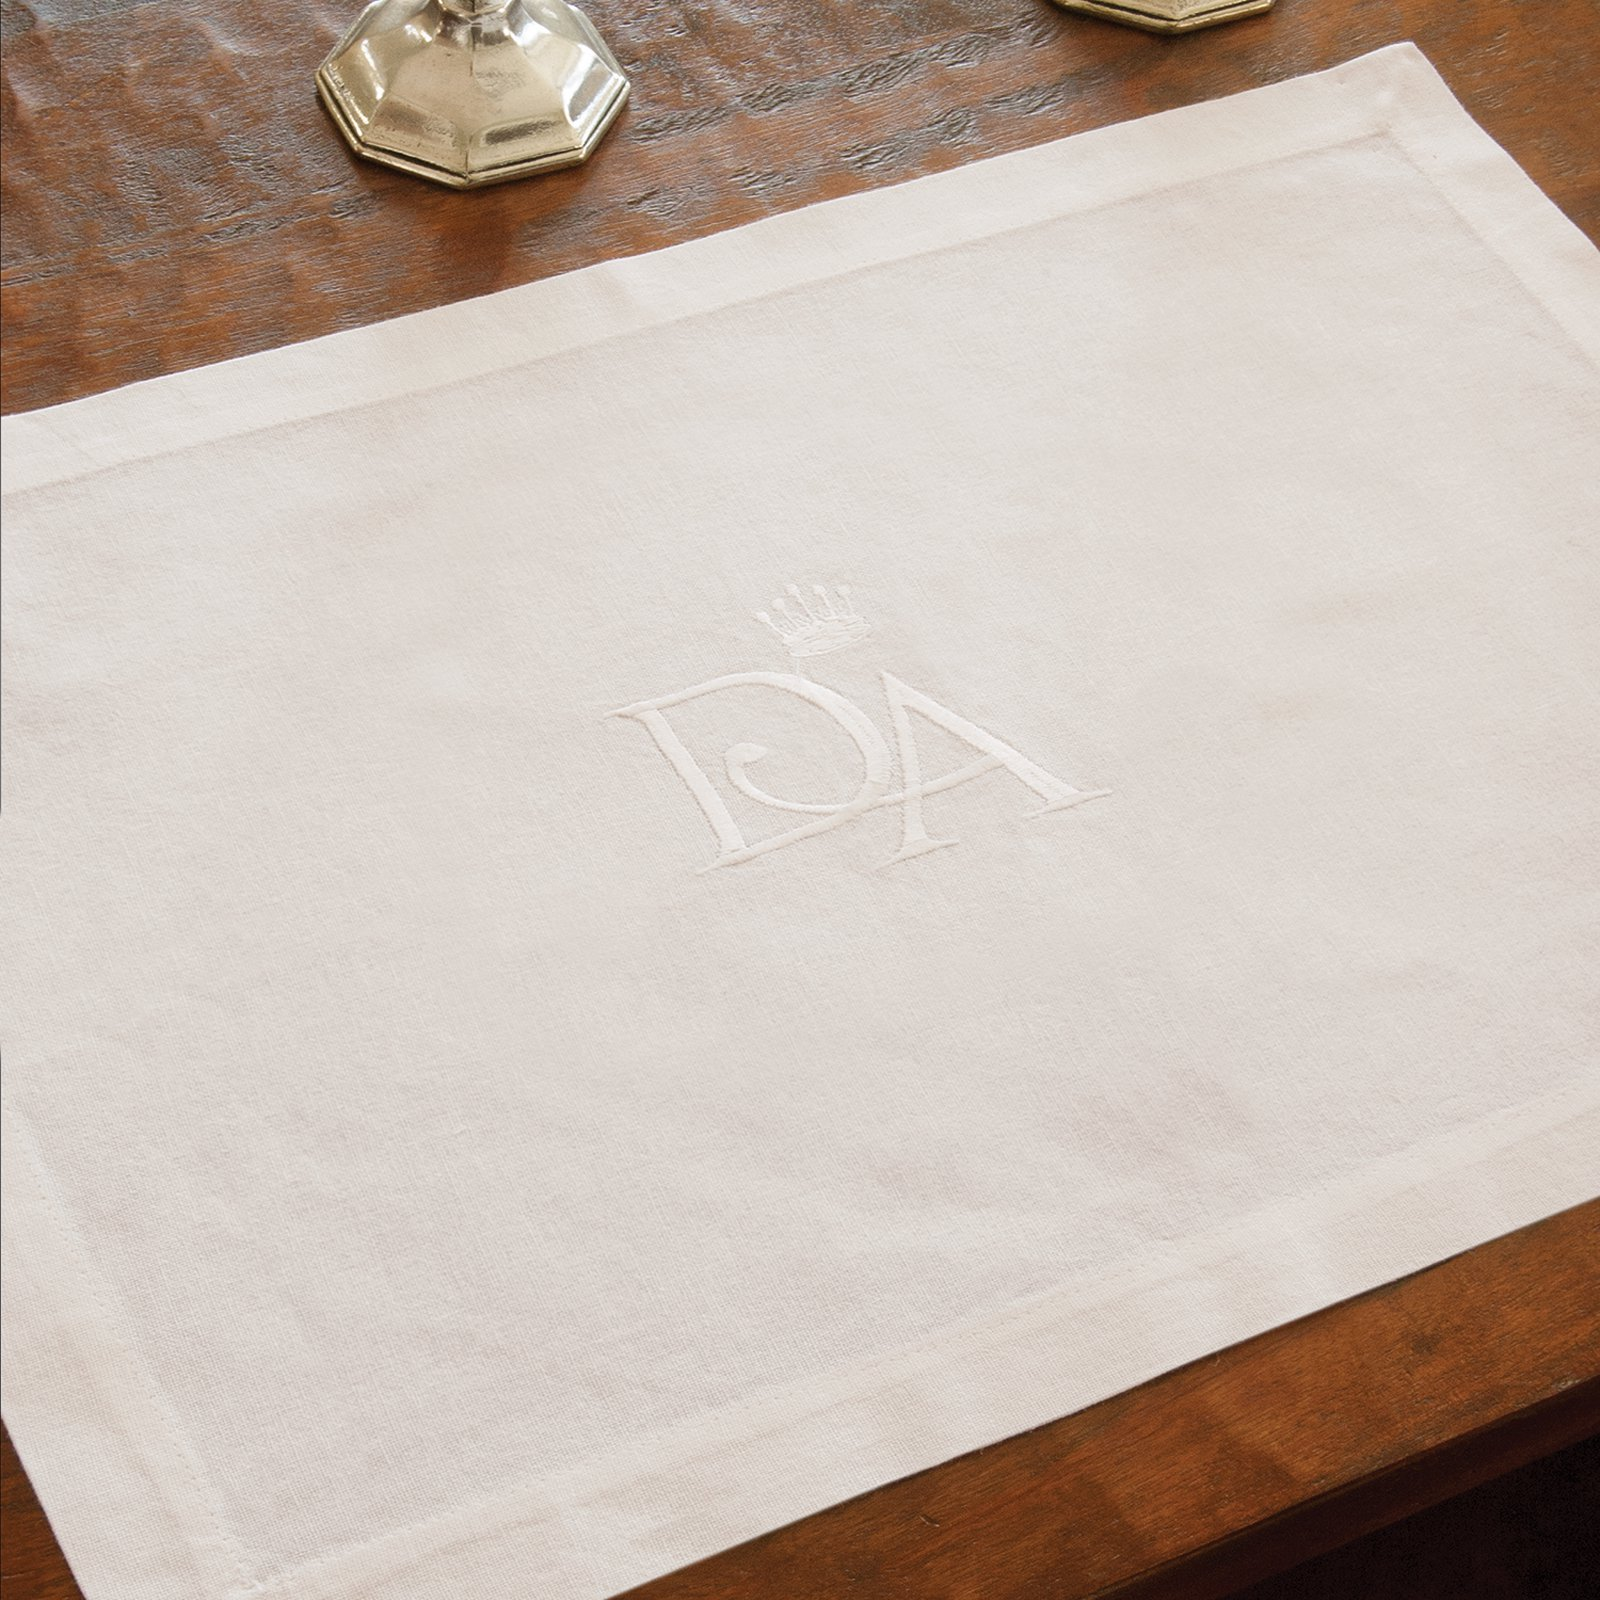 Downton Abbey by Heritage Lace Downton 14 x 20 in. Placemat - Set of 4